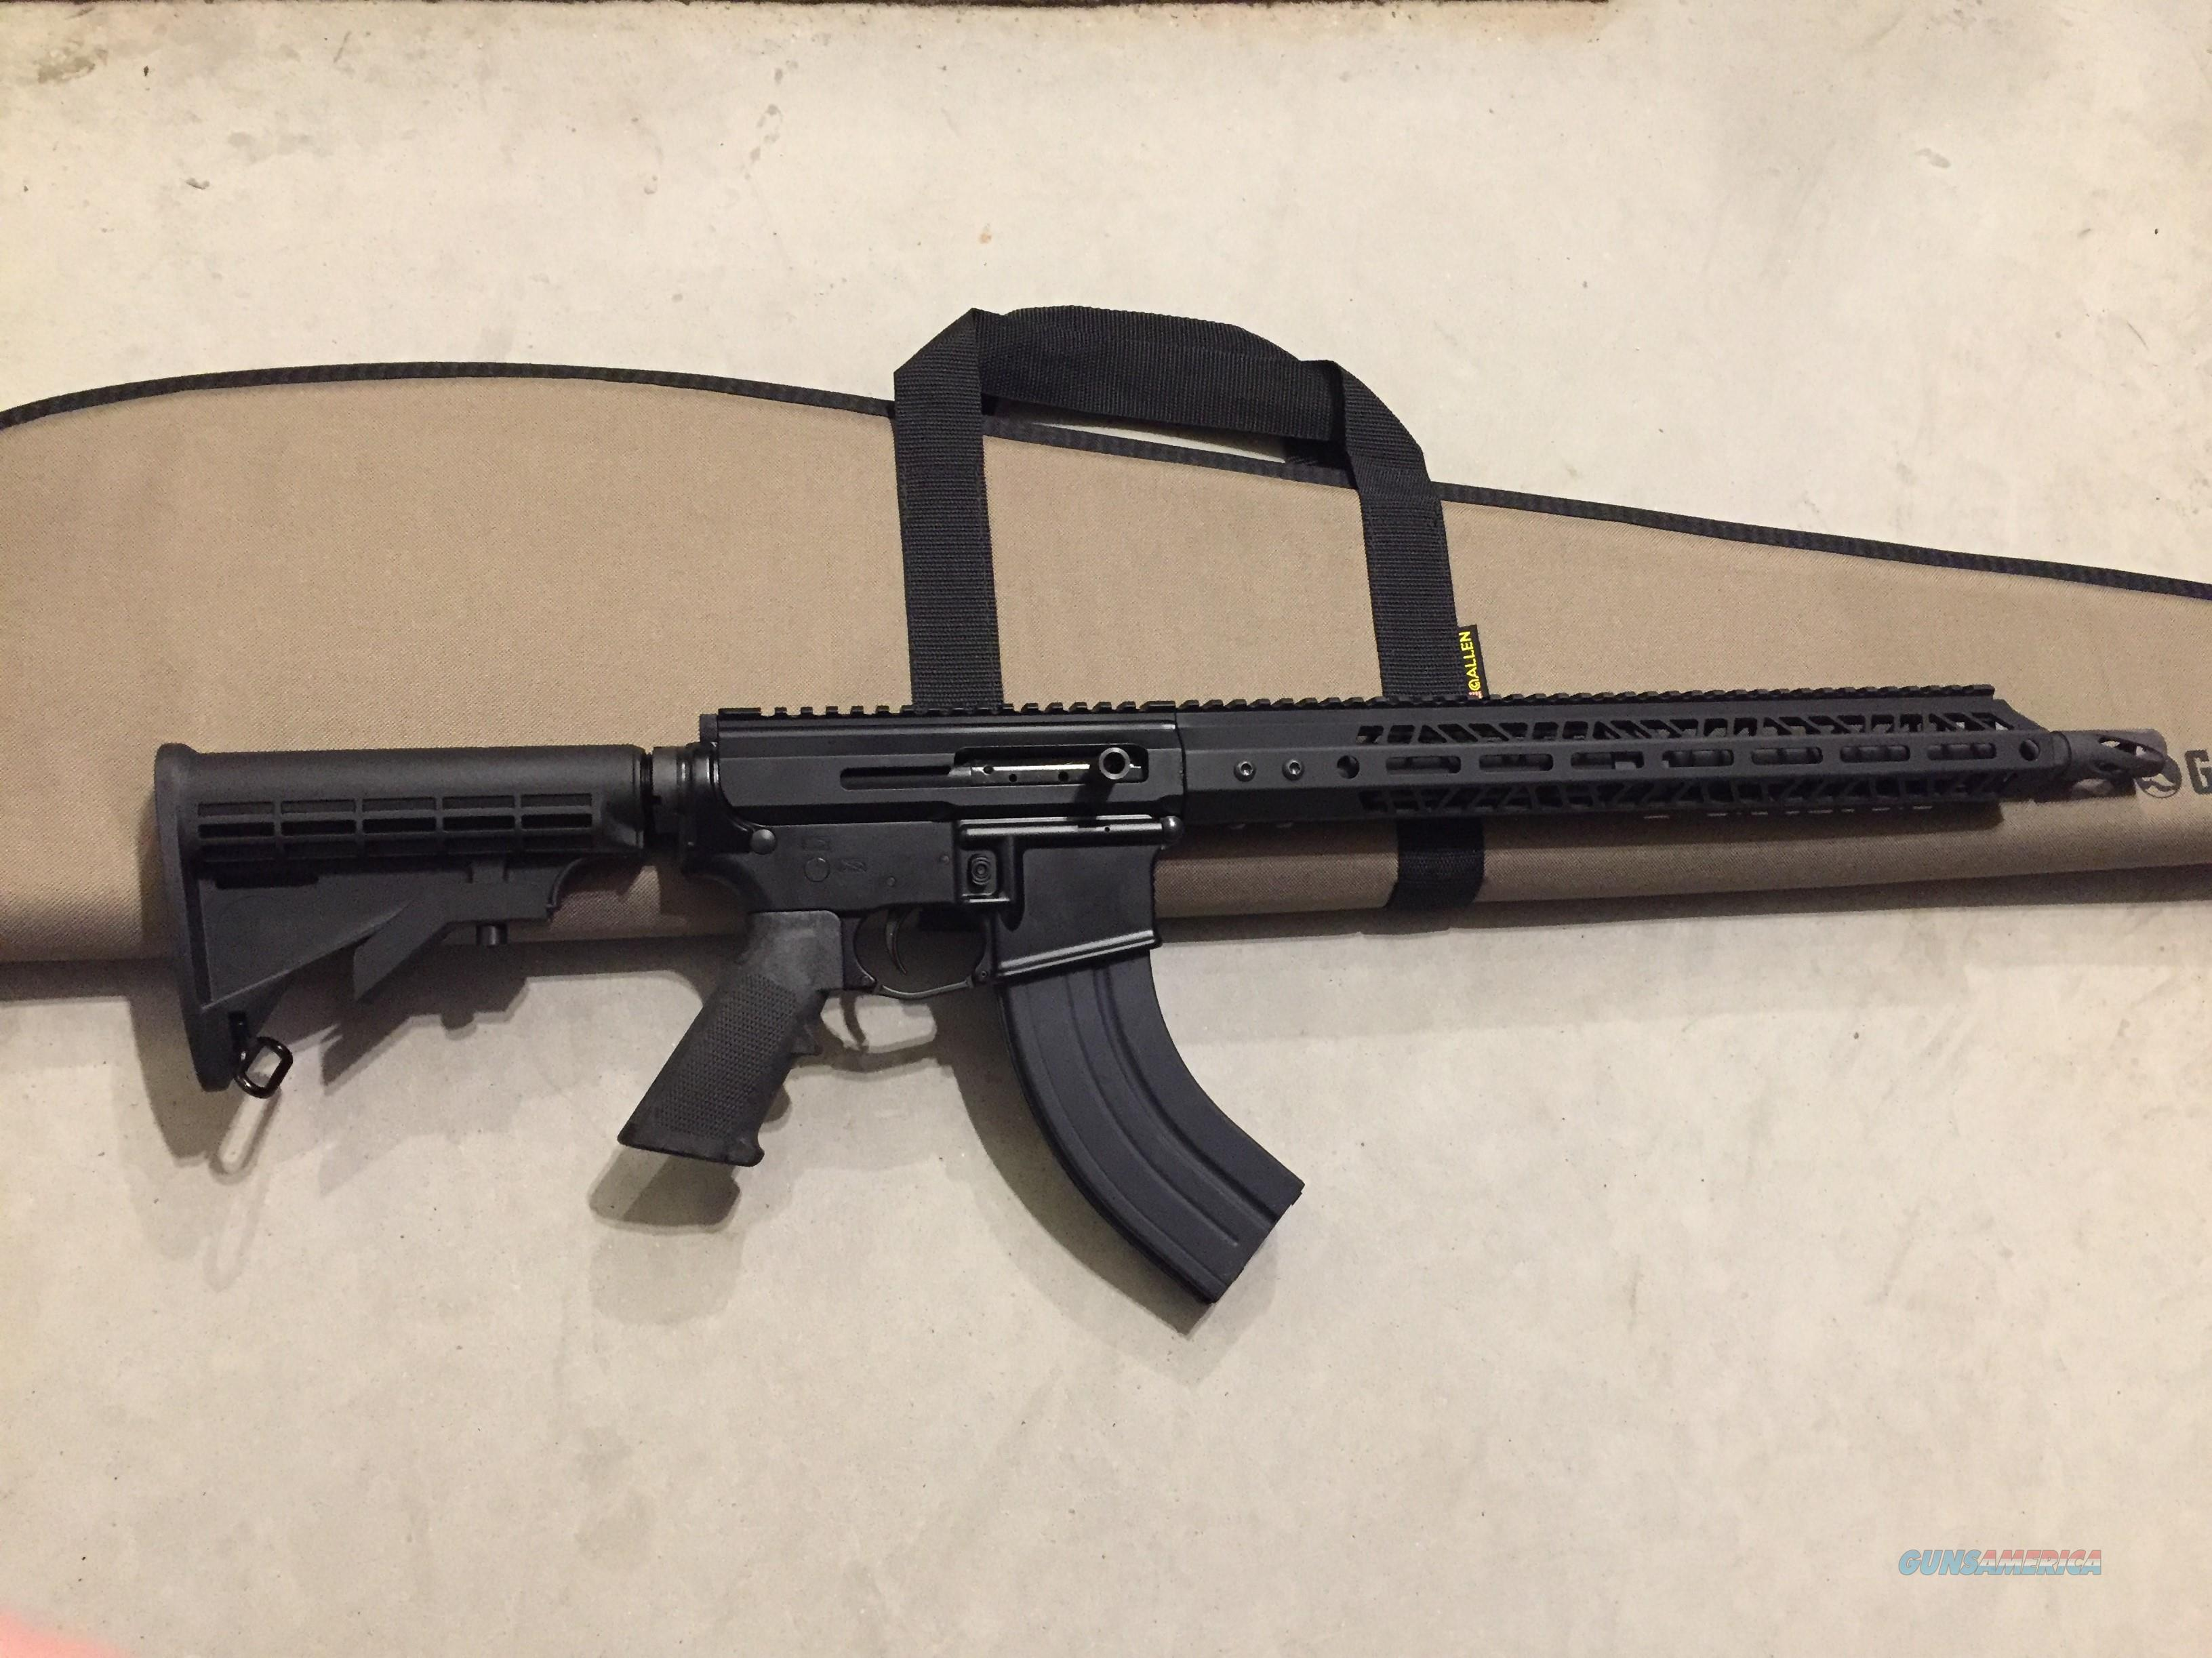 AR47 AR15 in 7.62x39mm Side charging (AK-47/SKS round)  Military Specification AR-15/ AR-47 new in soft case (No Card Fees Added)  Guns > Rifles > AR-15 Rifles - Small Manufacturers > Complete Rifle